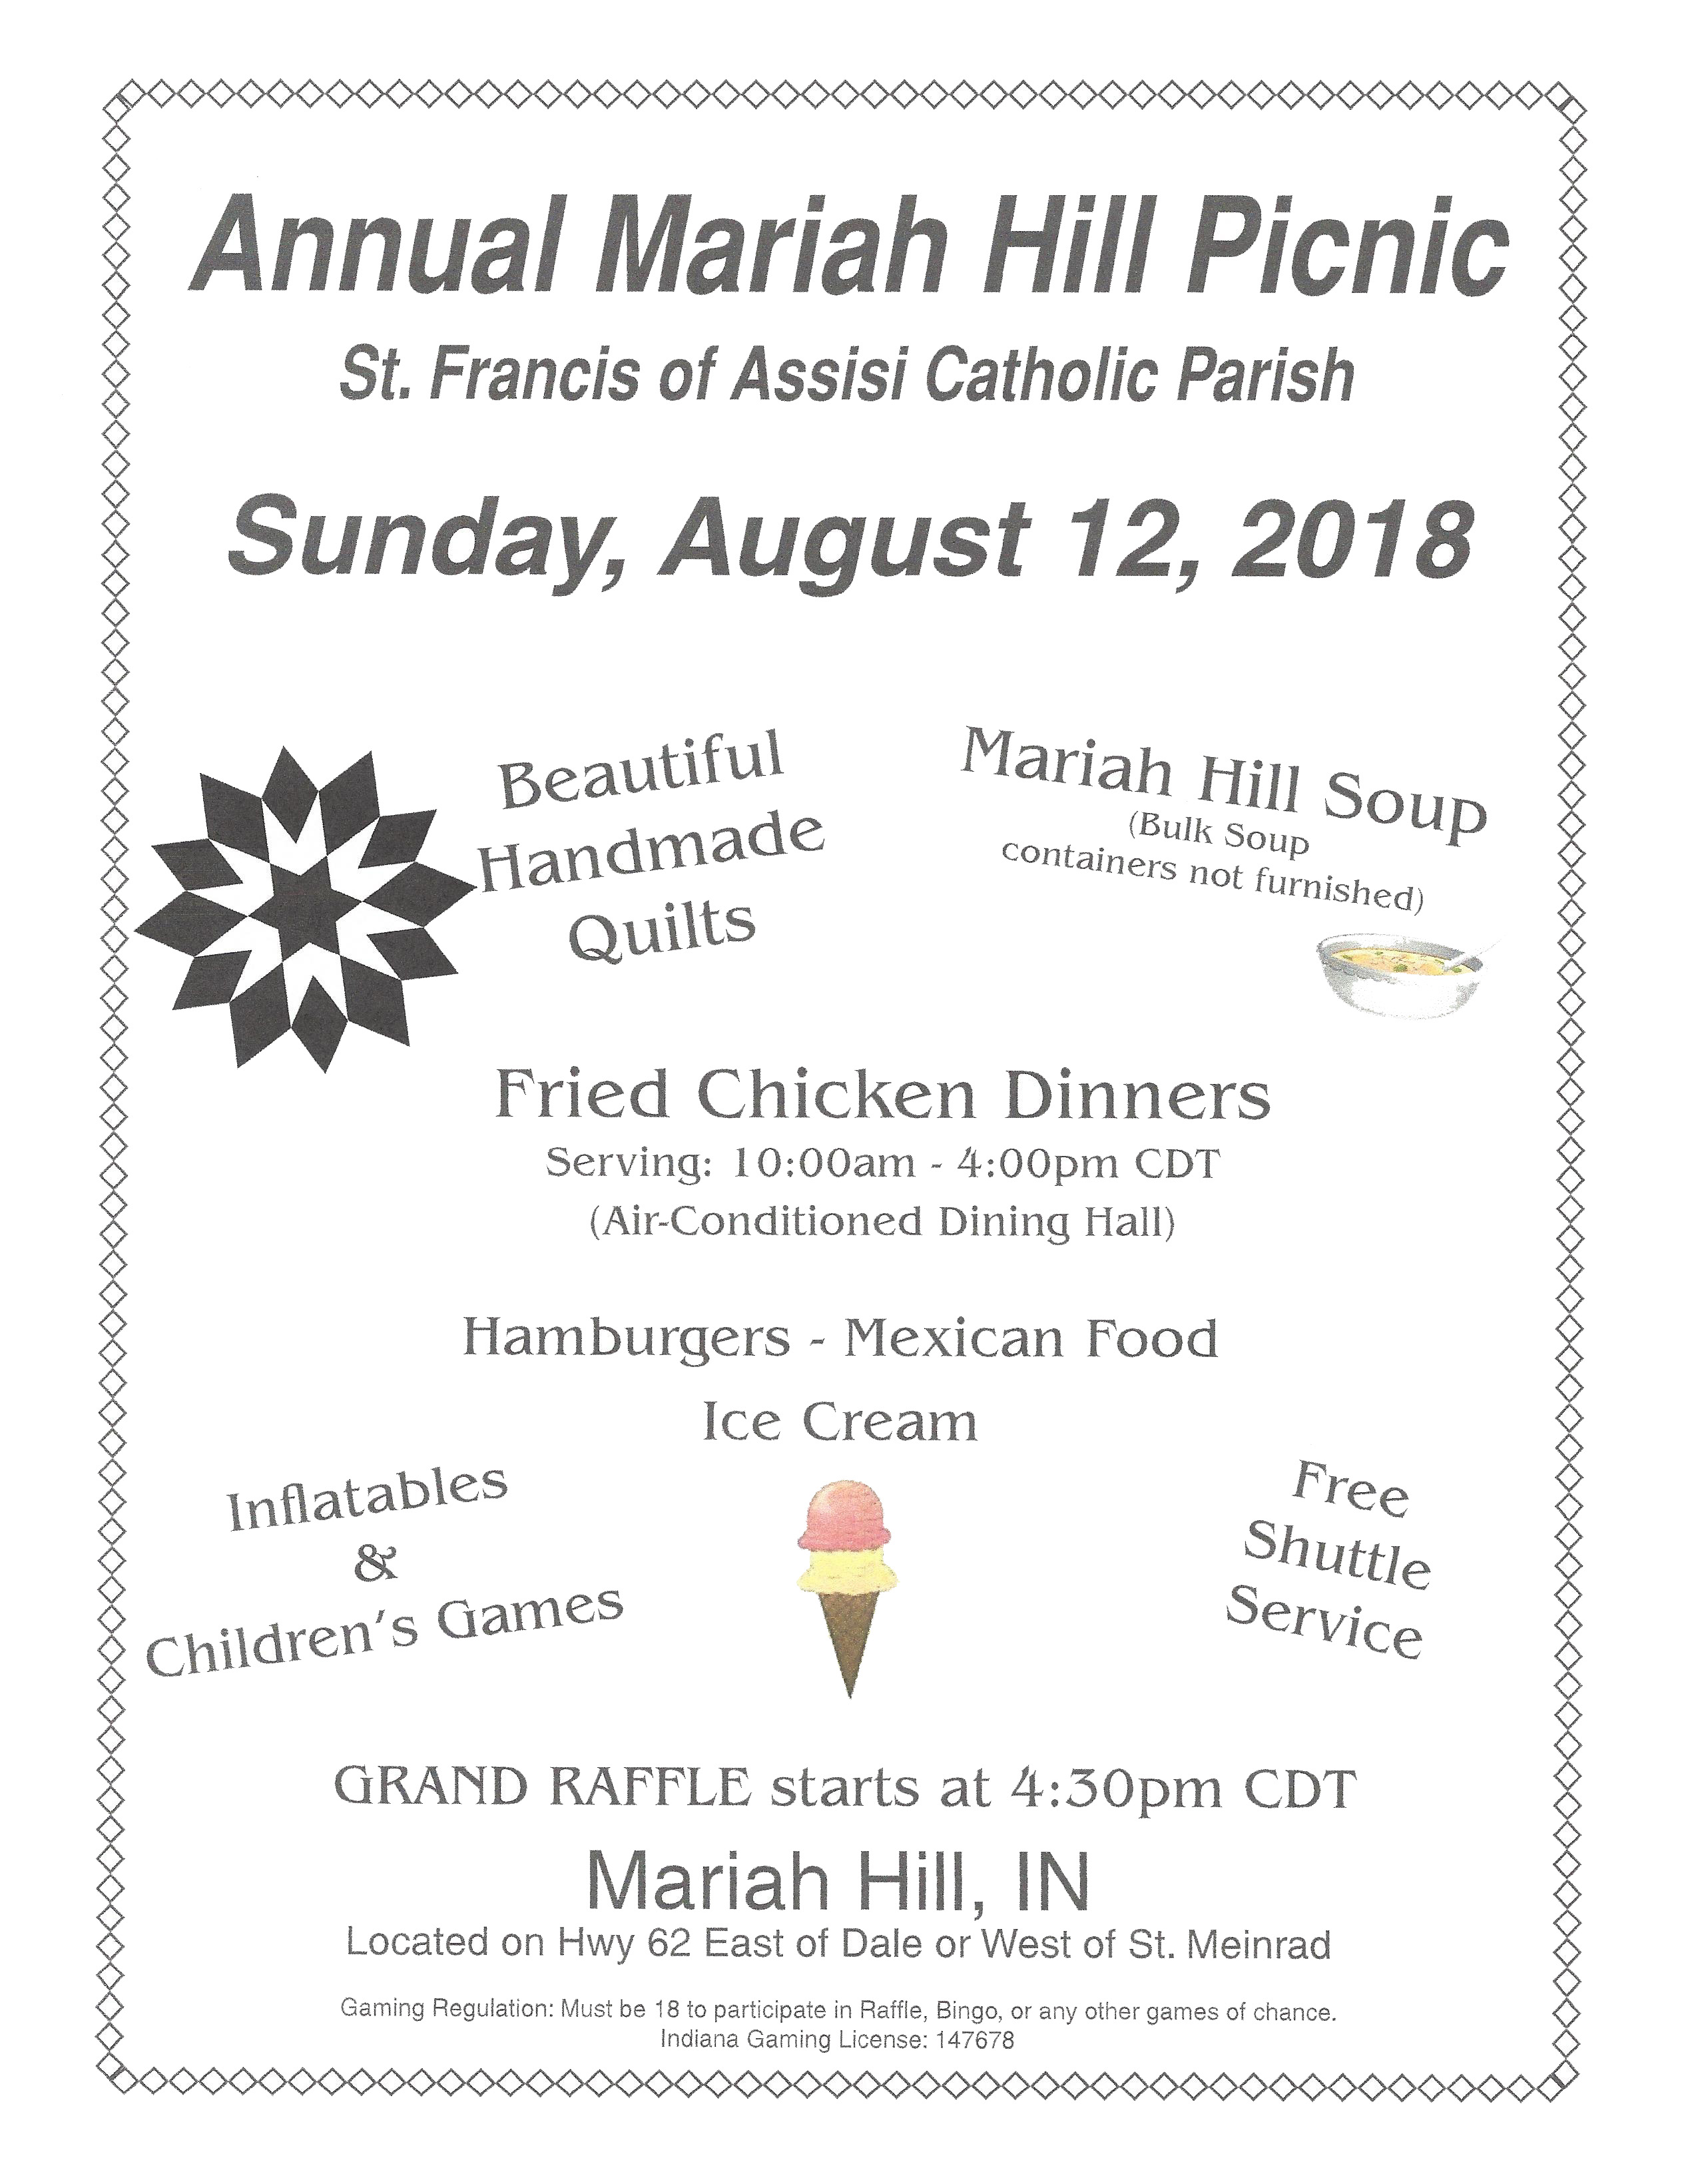 Annual Mariah Hill Picnic Is Sunday August 12th 1033 The Fix